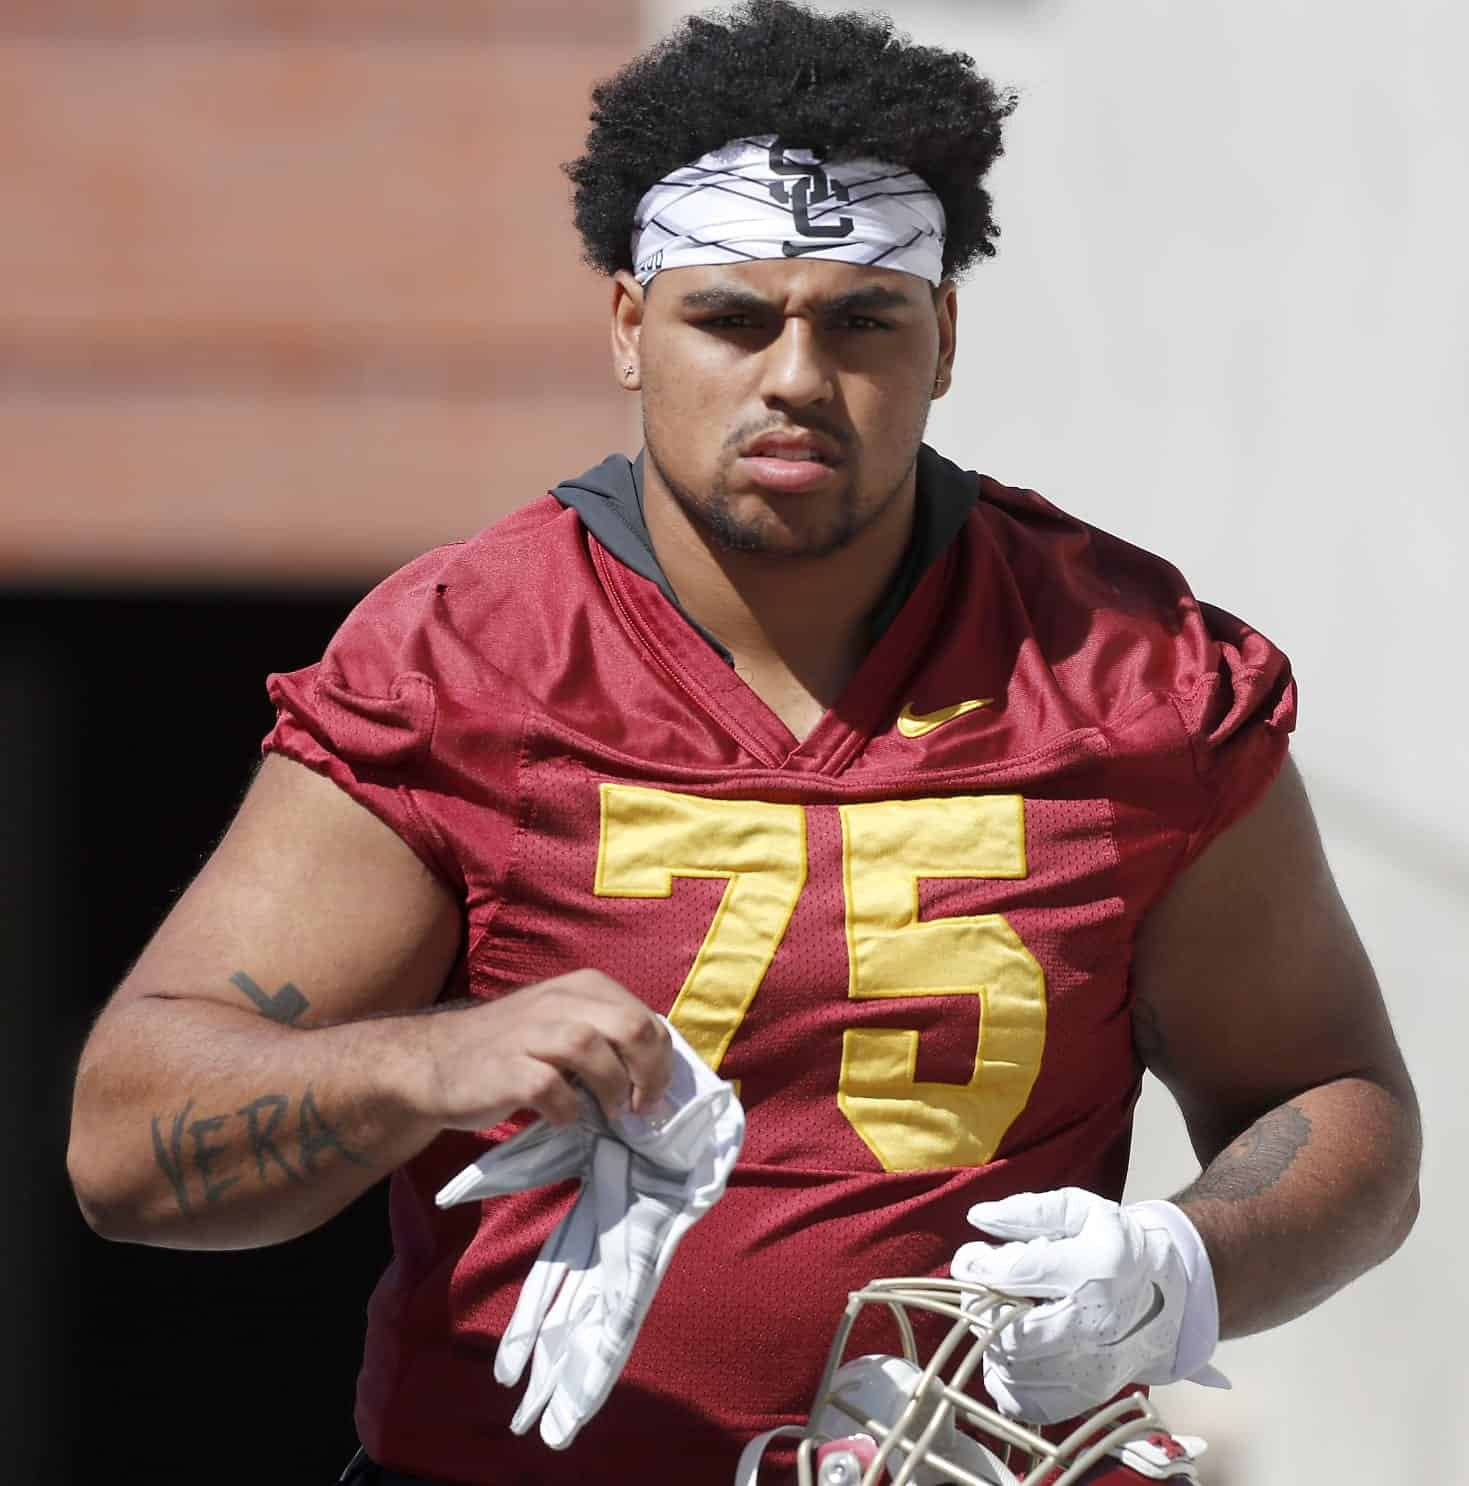 Top 2021 USC draft prospects can bring Trojans back to prominence